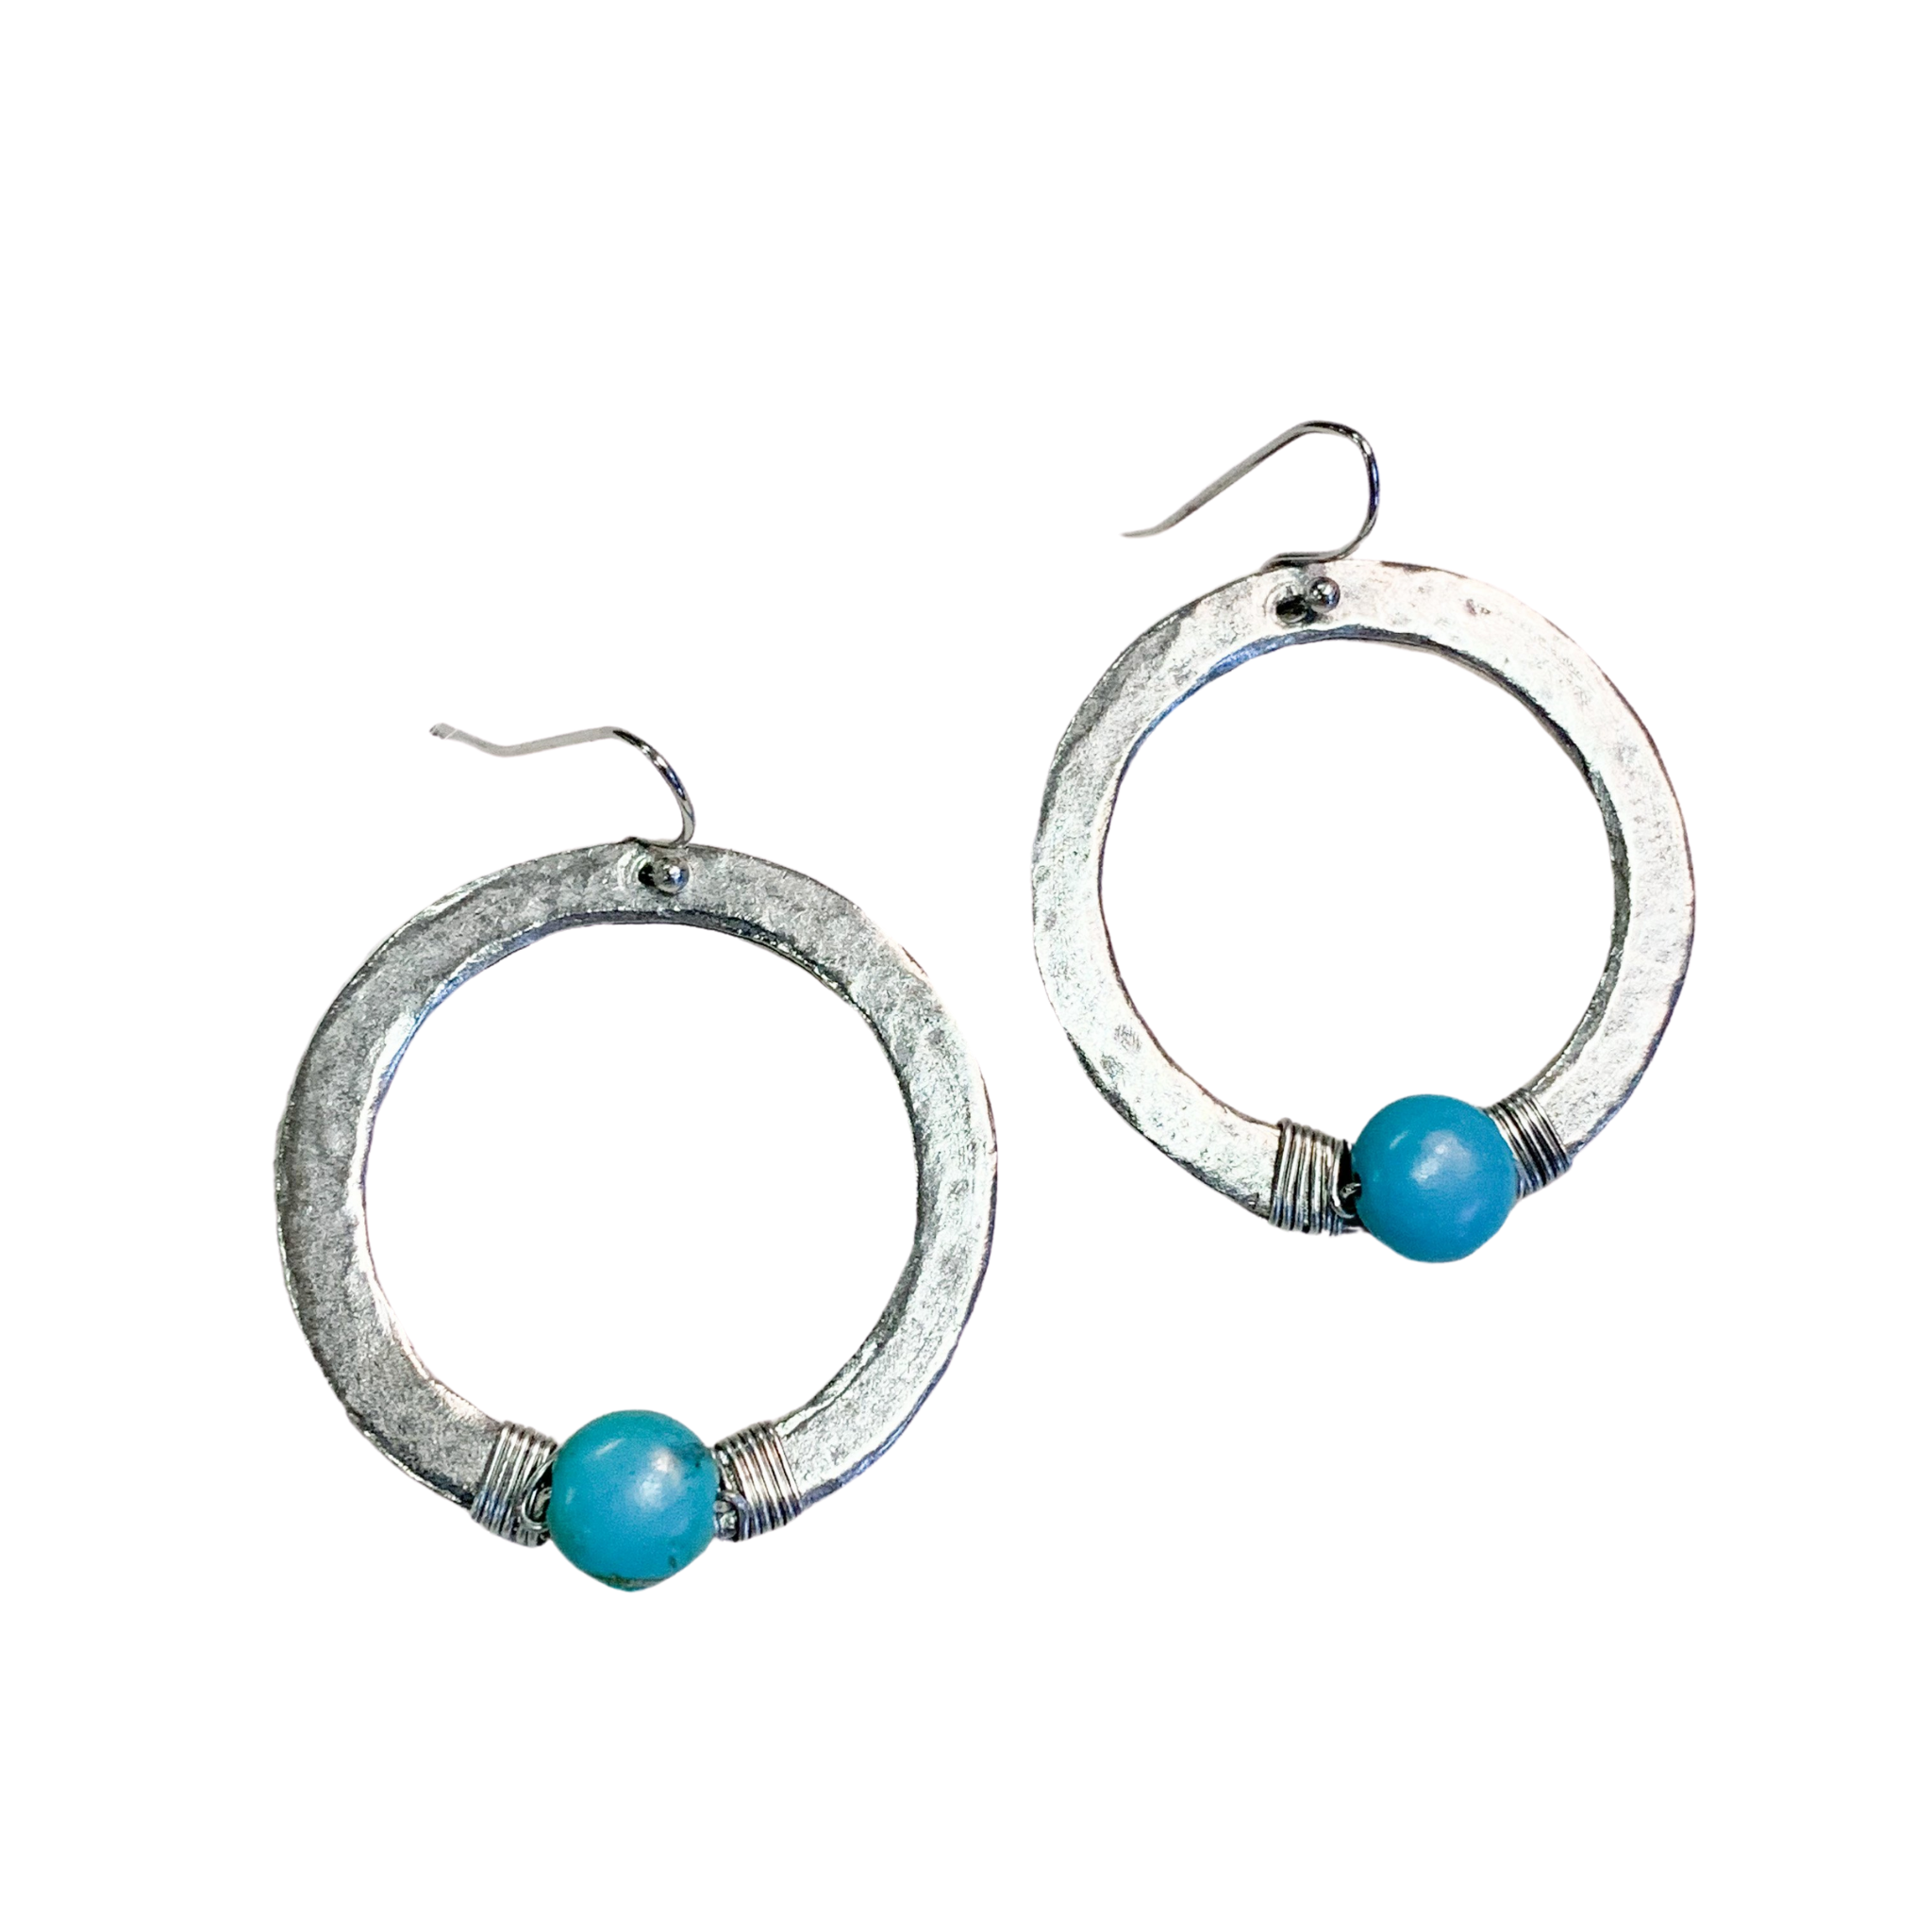 Hammered Silver Hoop With Turquoise Earrings